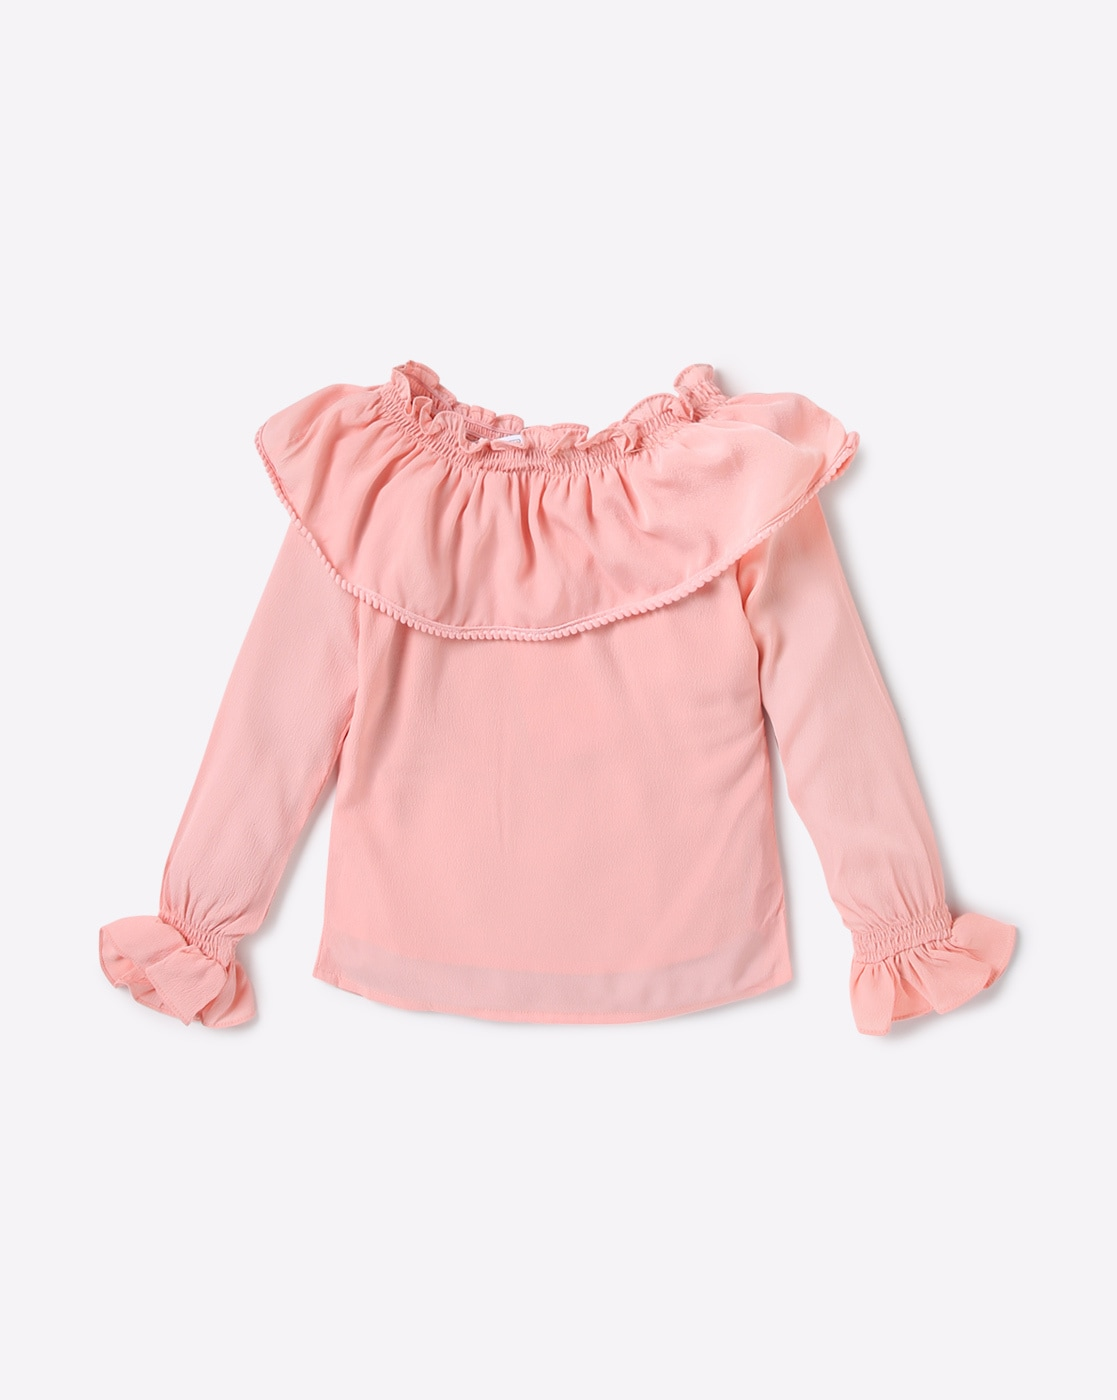 ee615a40a6c Buy Pink Tops & Tunics for Girls by Peppermint Online | Ajio.com